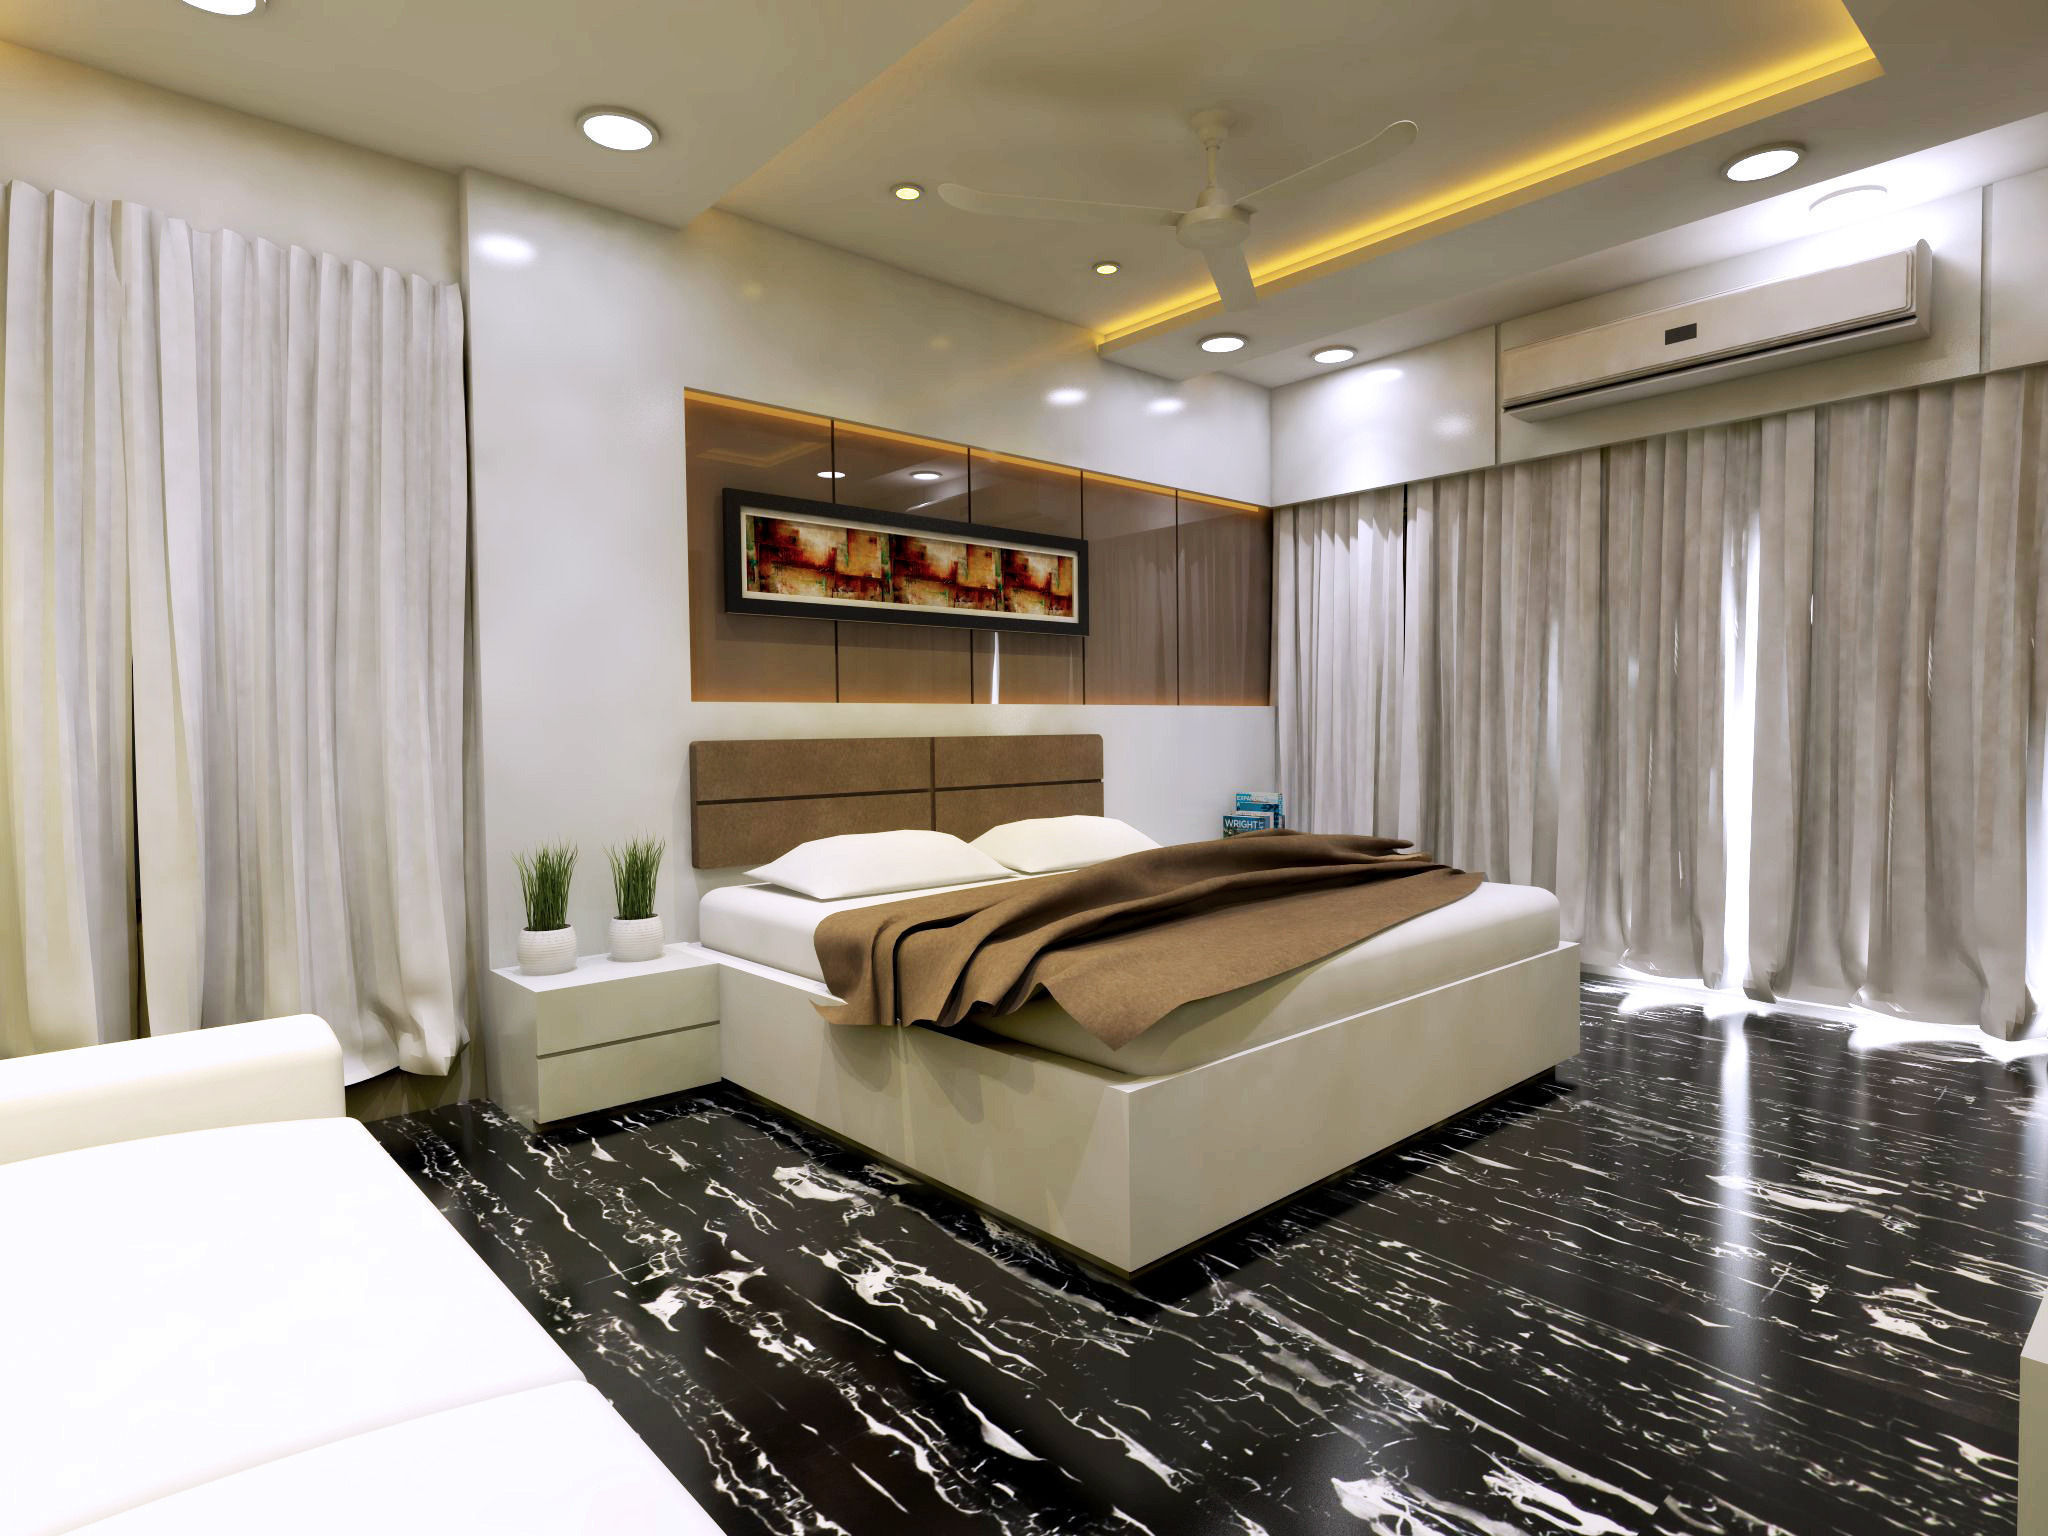 Modern bedroom interior vray rendered 3d model skp for Bedroom designs 3d model